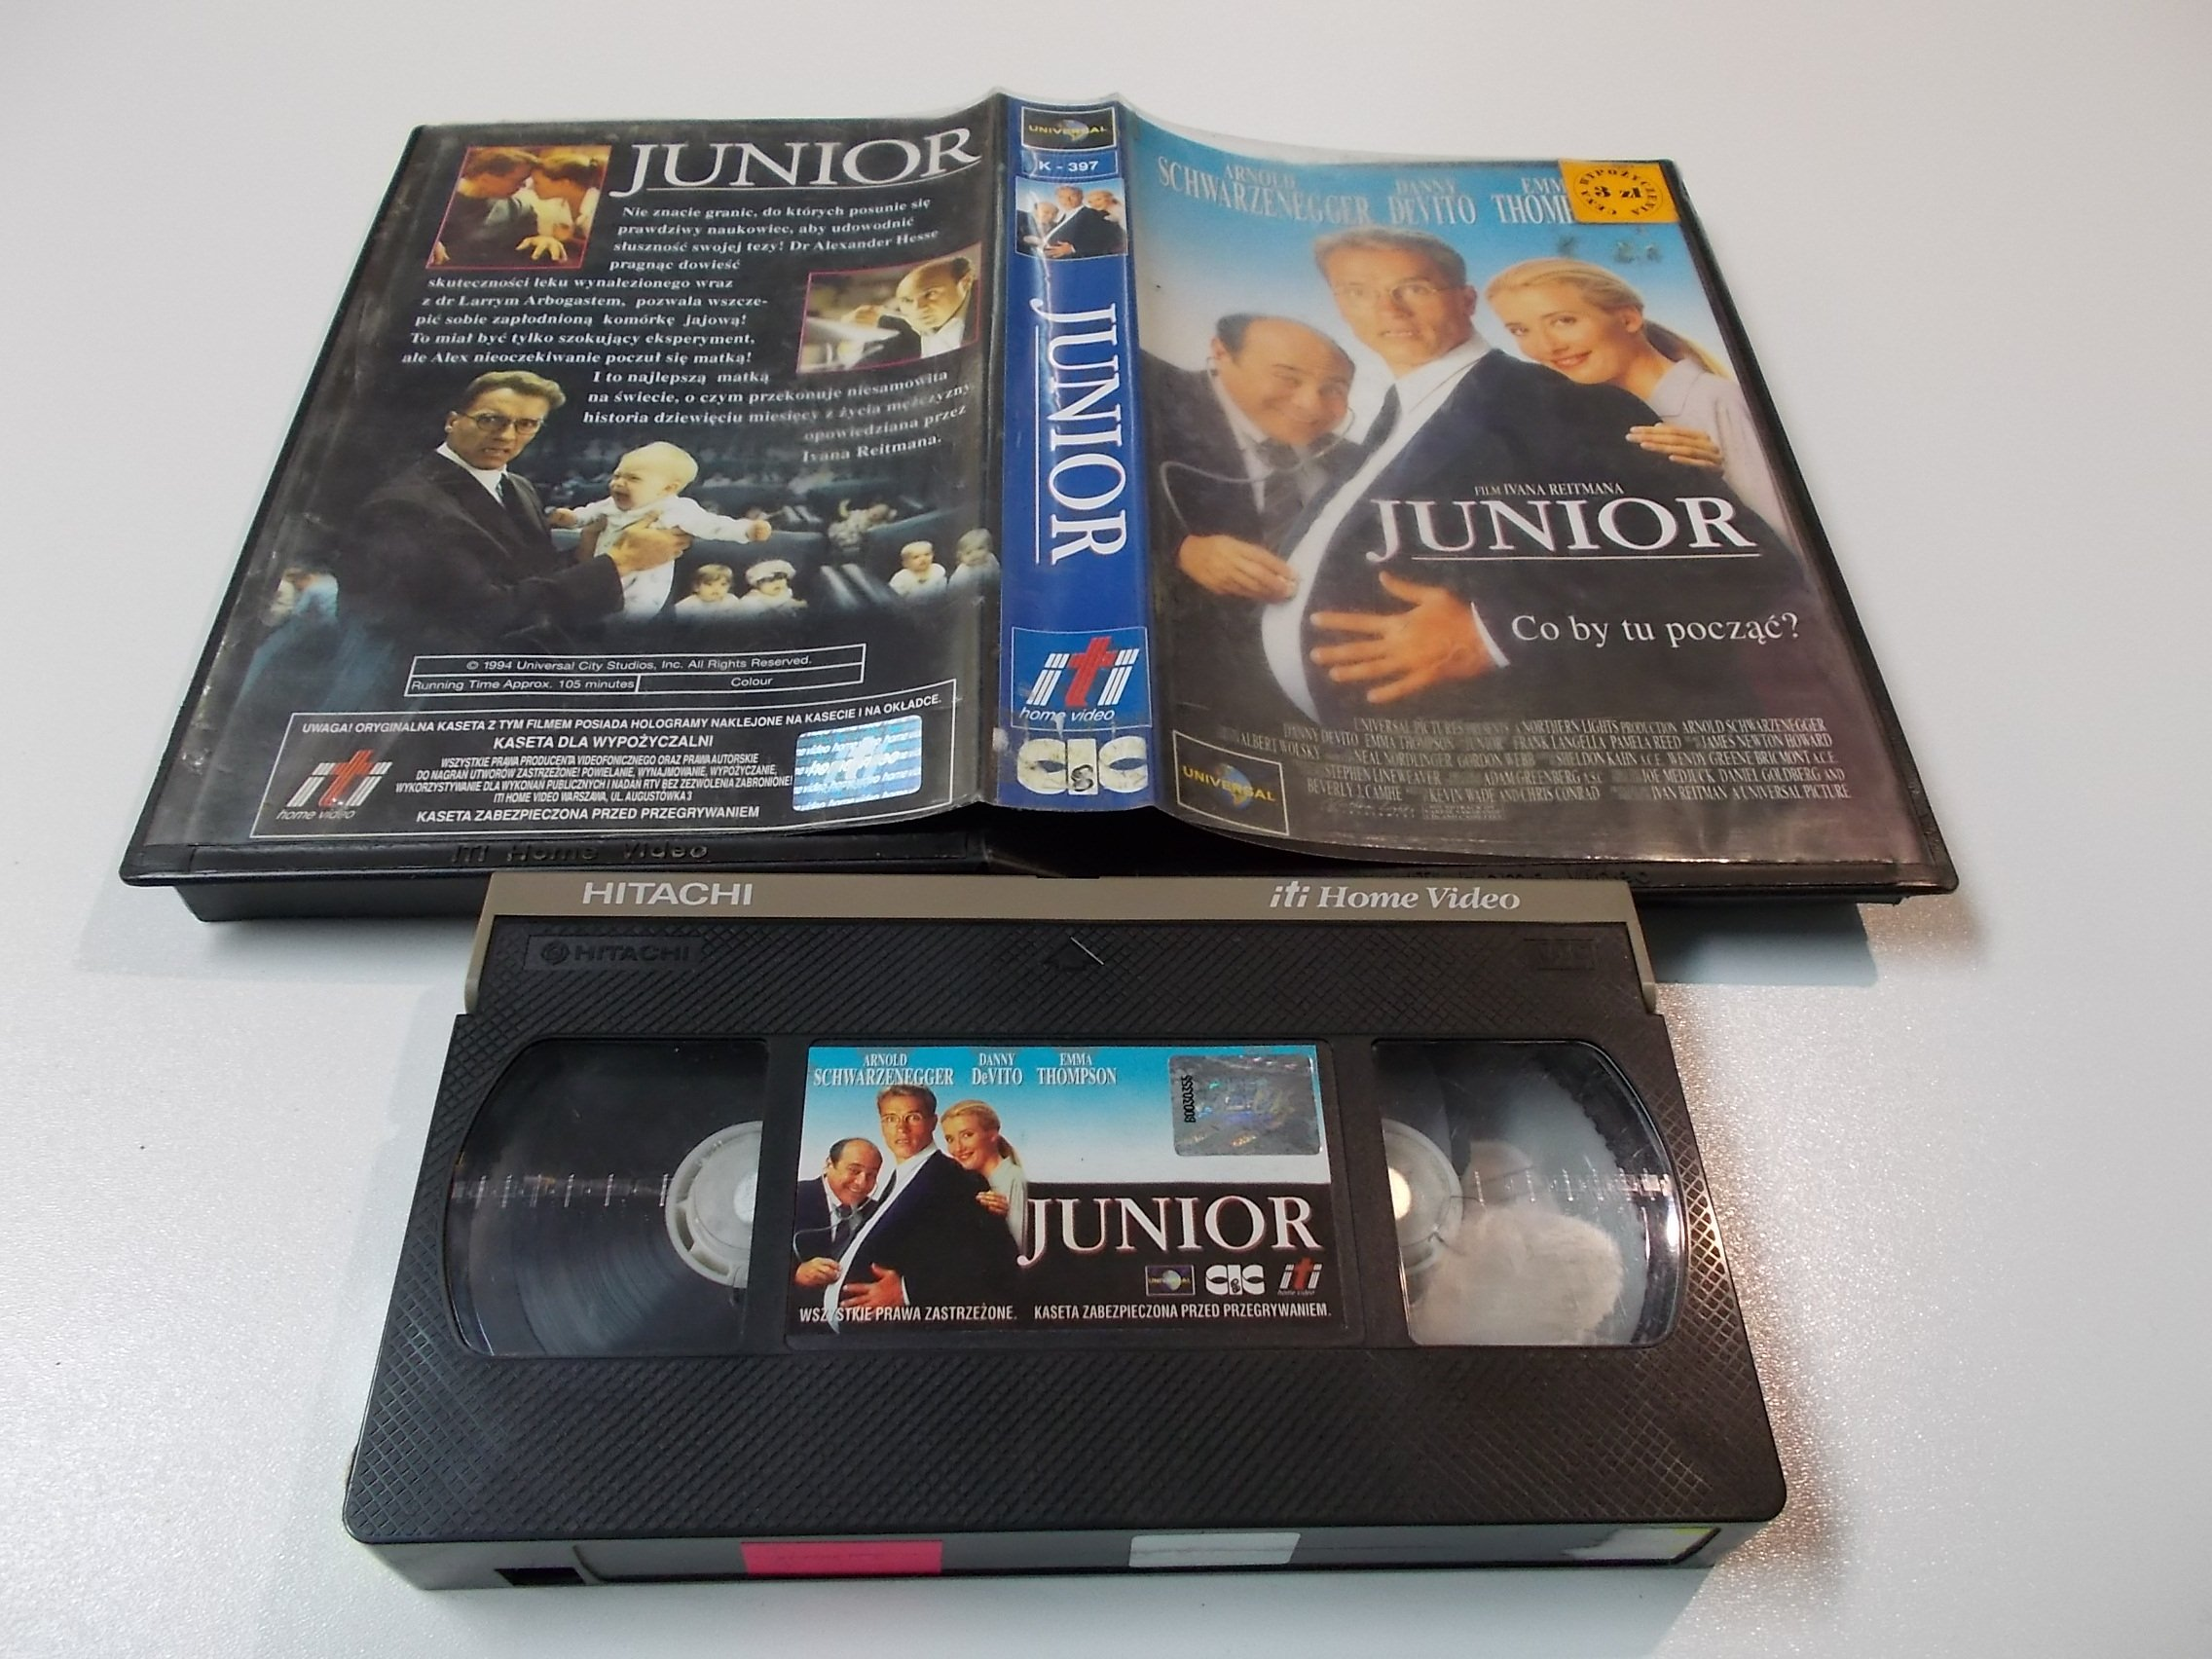 JUNIOR - ARNOLD SCHWARZENEGGER - kaseta Video VHS - 1426 Sklep